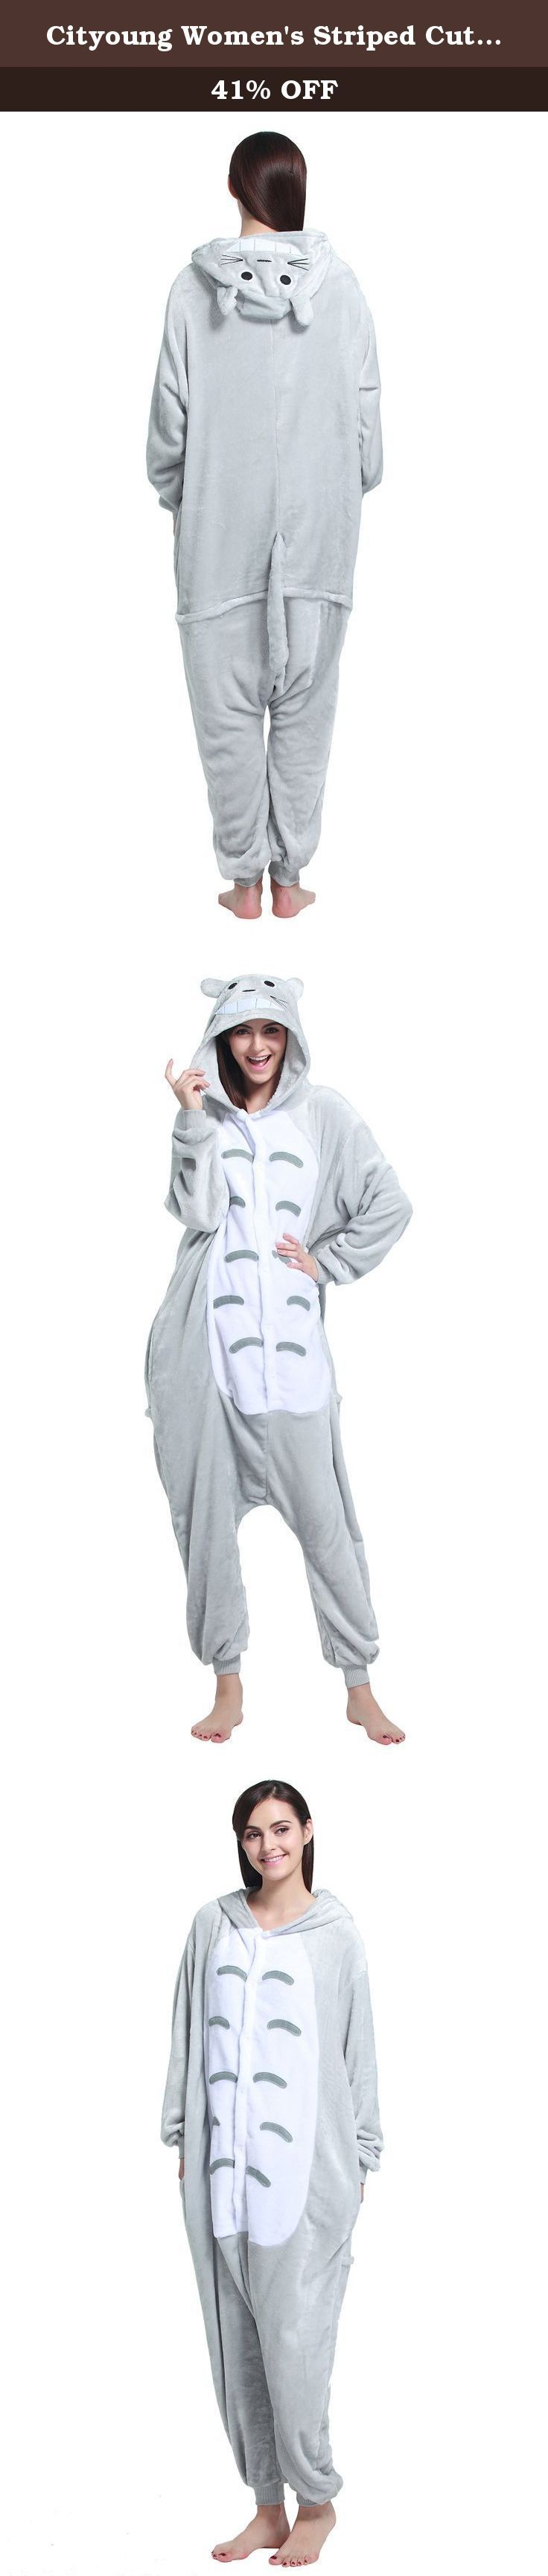 Cityoung Women's Striped Cute Warm Flannel Pajama Onesie,Cat,Medium. The pjs onesie is made of comfortable plush fleece material to keep you warm. Animal & cartoon character sleepwear with vibrant color and novelty design is great for cosplay or kigurumi. All of the full body pjs both available in kid and adult sizes, with the right fit giving you enough room for comfortable movement. Hooded animal one piece pajamas is not footed; the cat in the hat pjs is footed. Machine wash code...